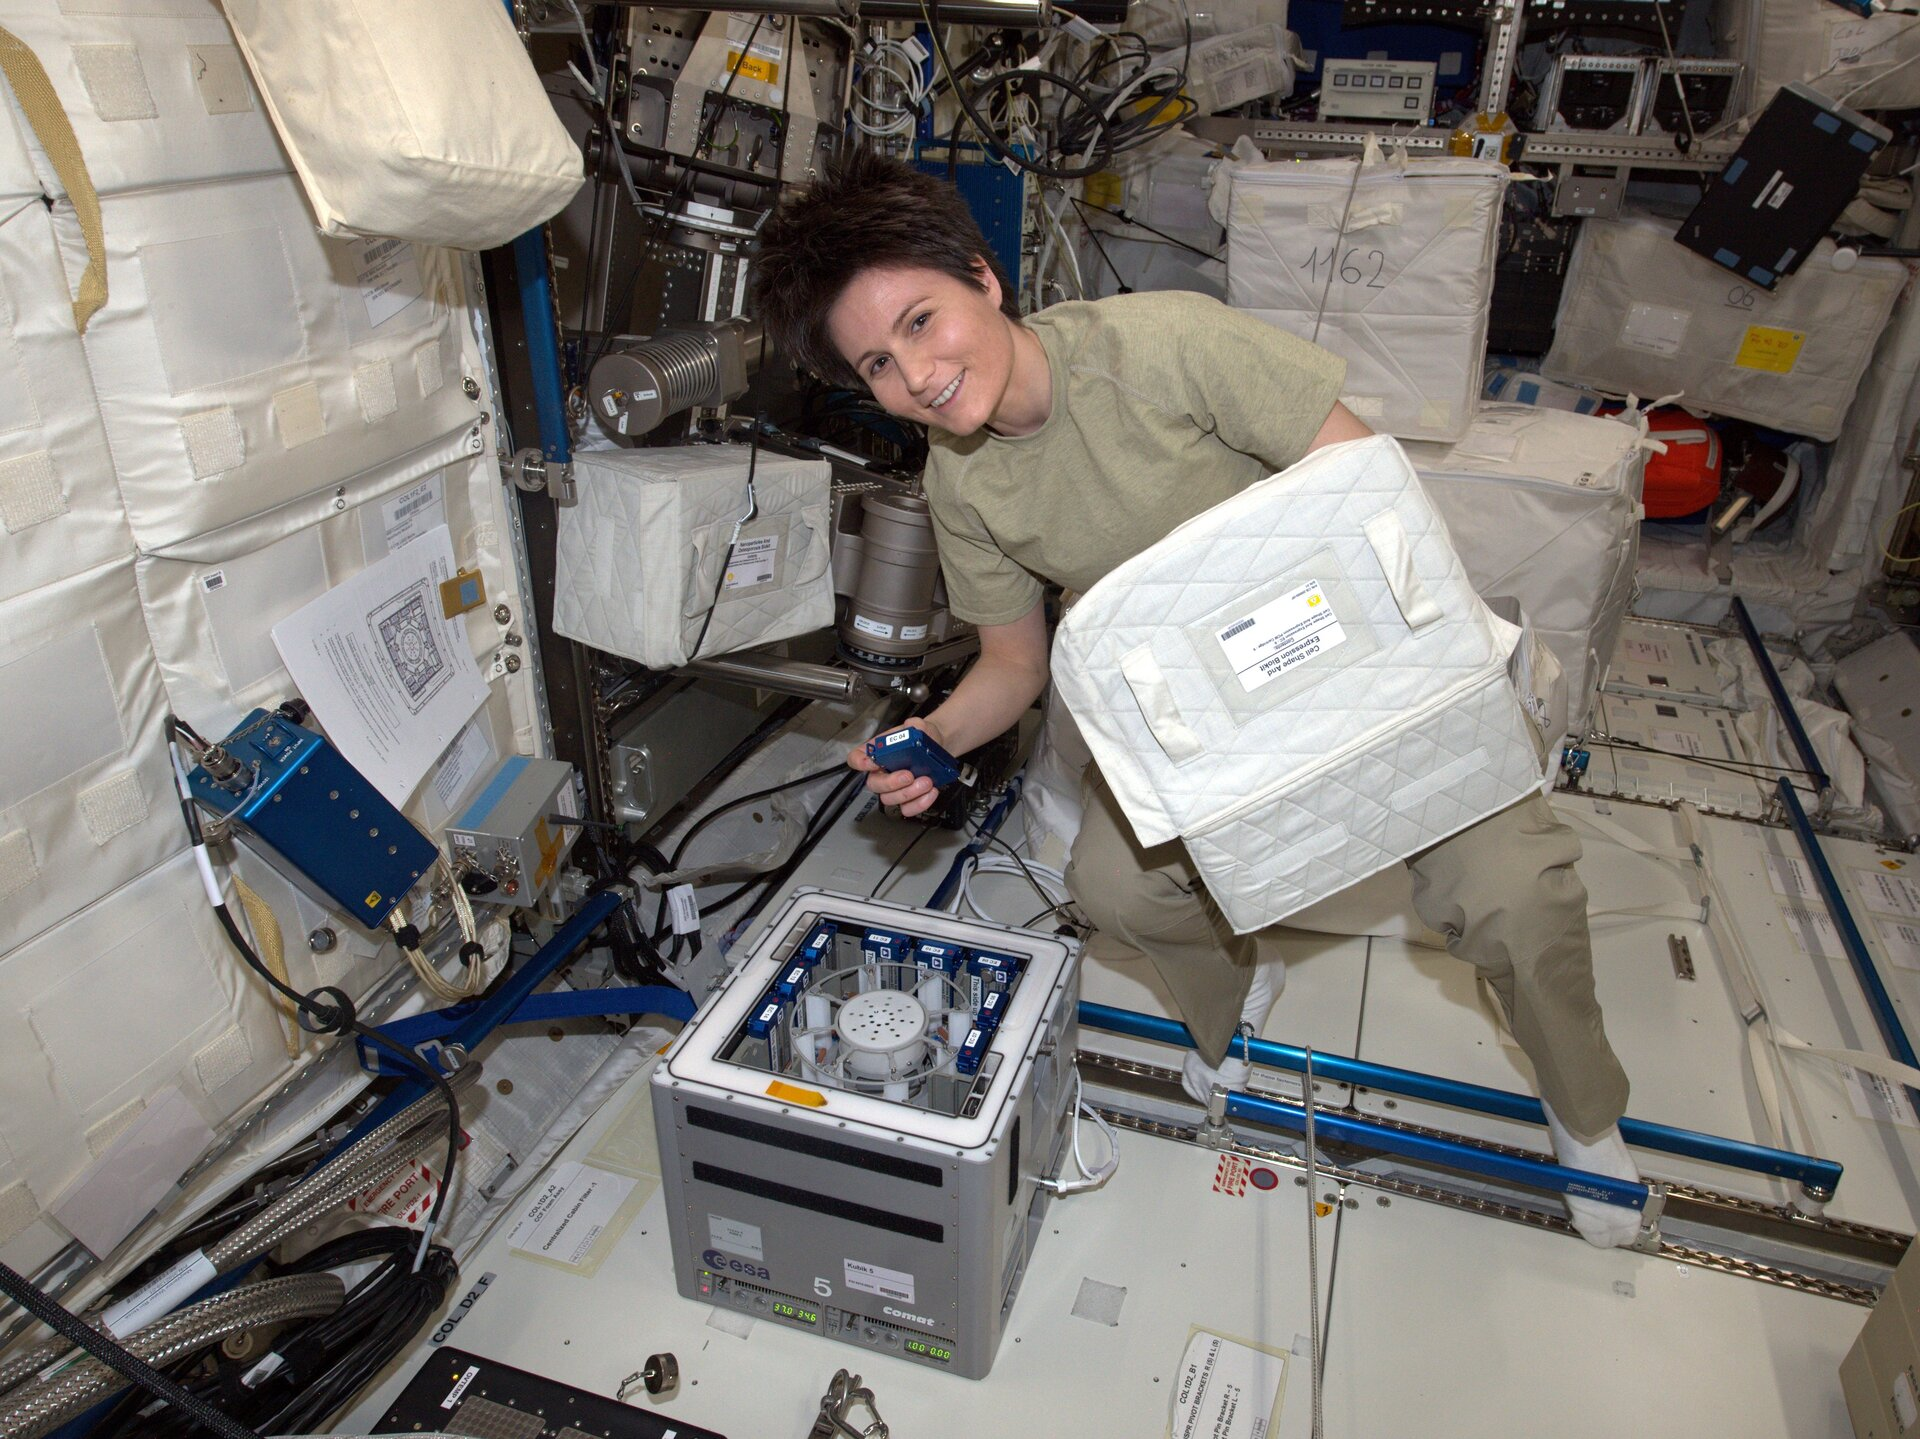 Working with ESA's Kubik centrifuge